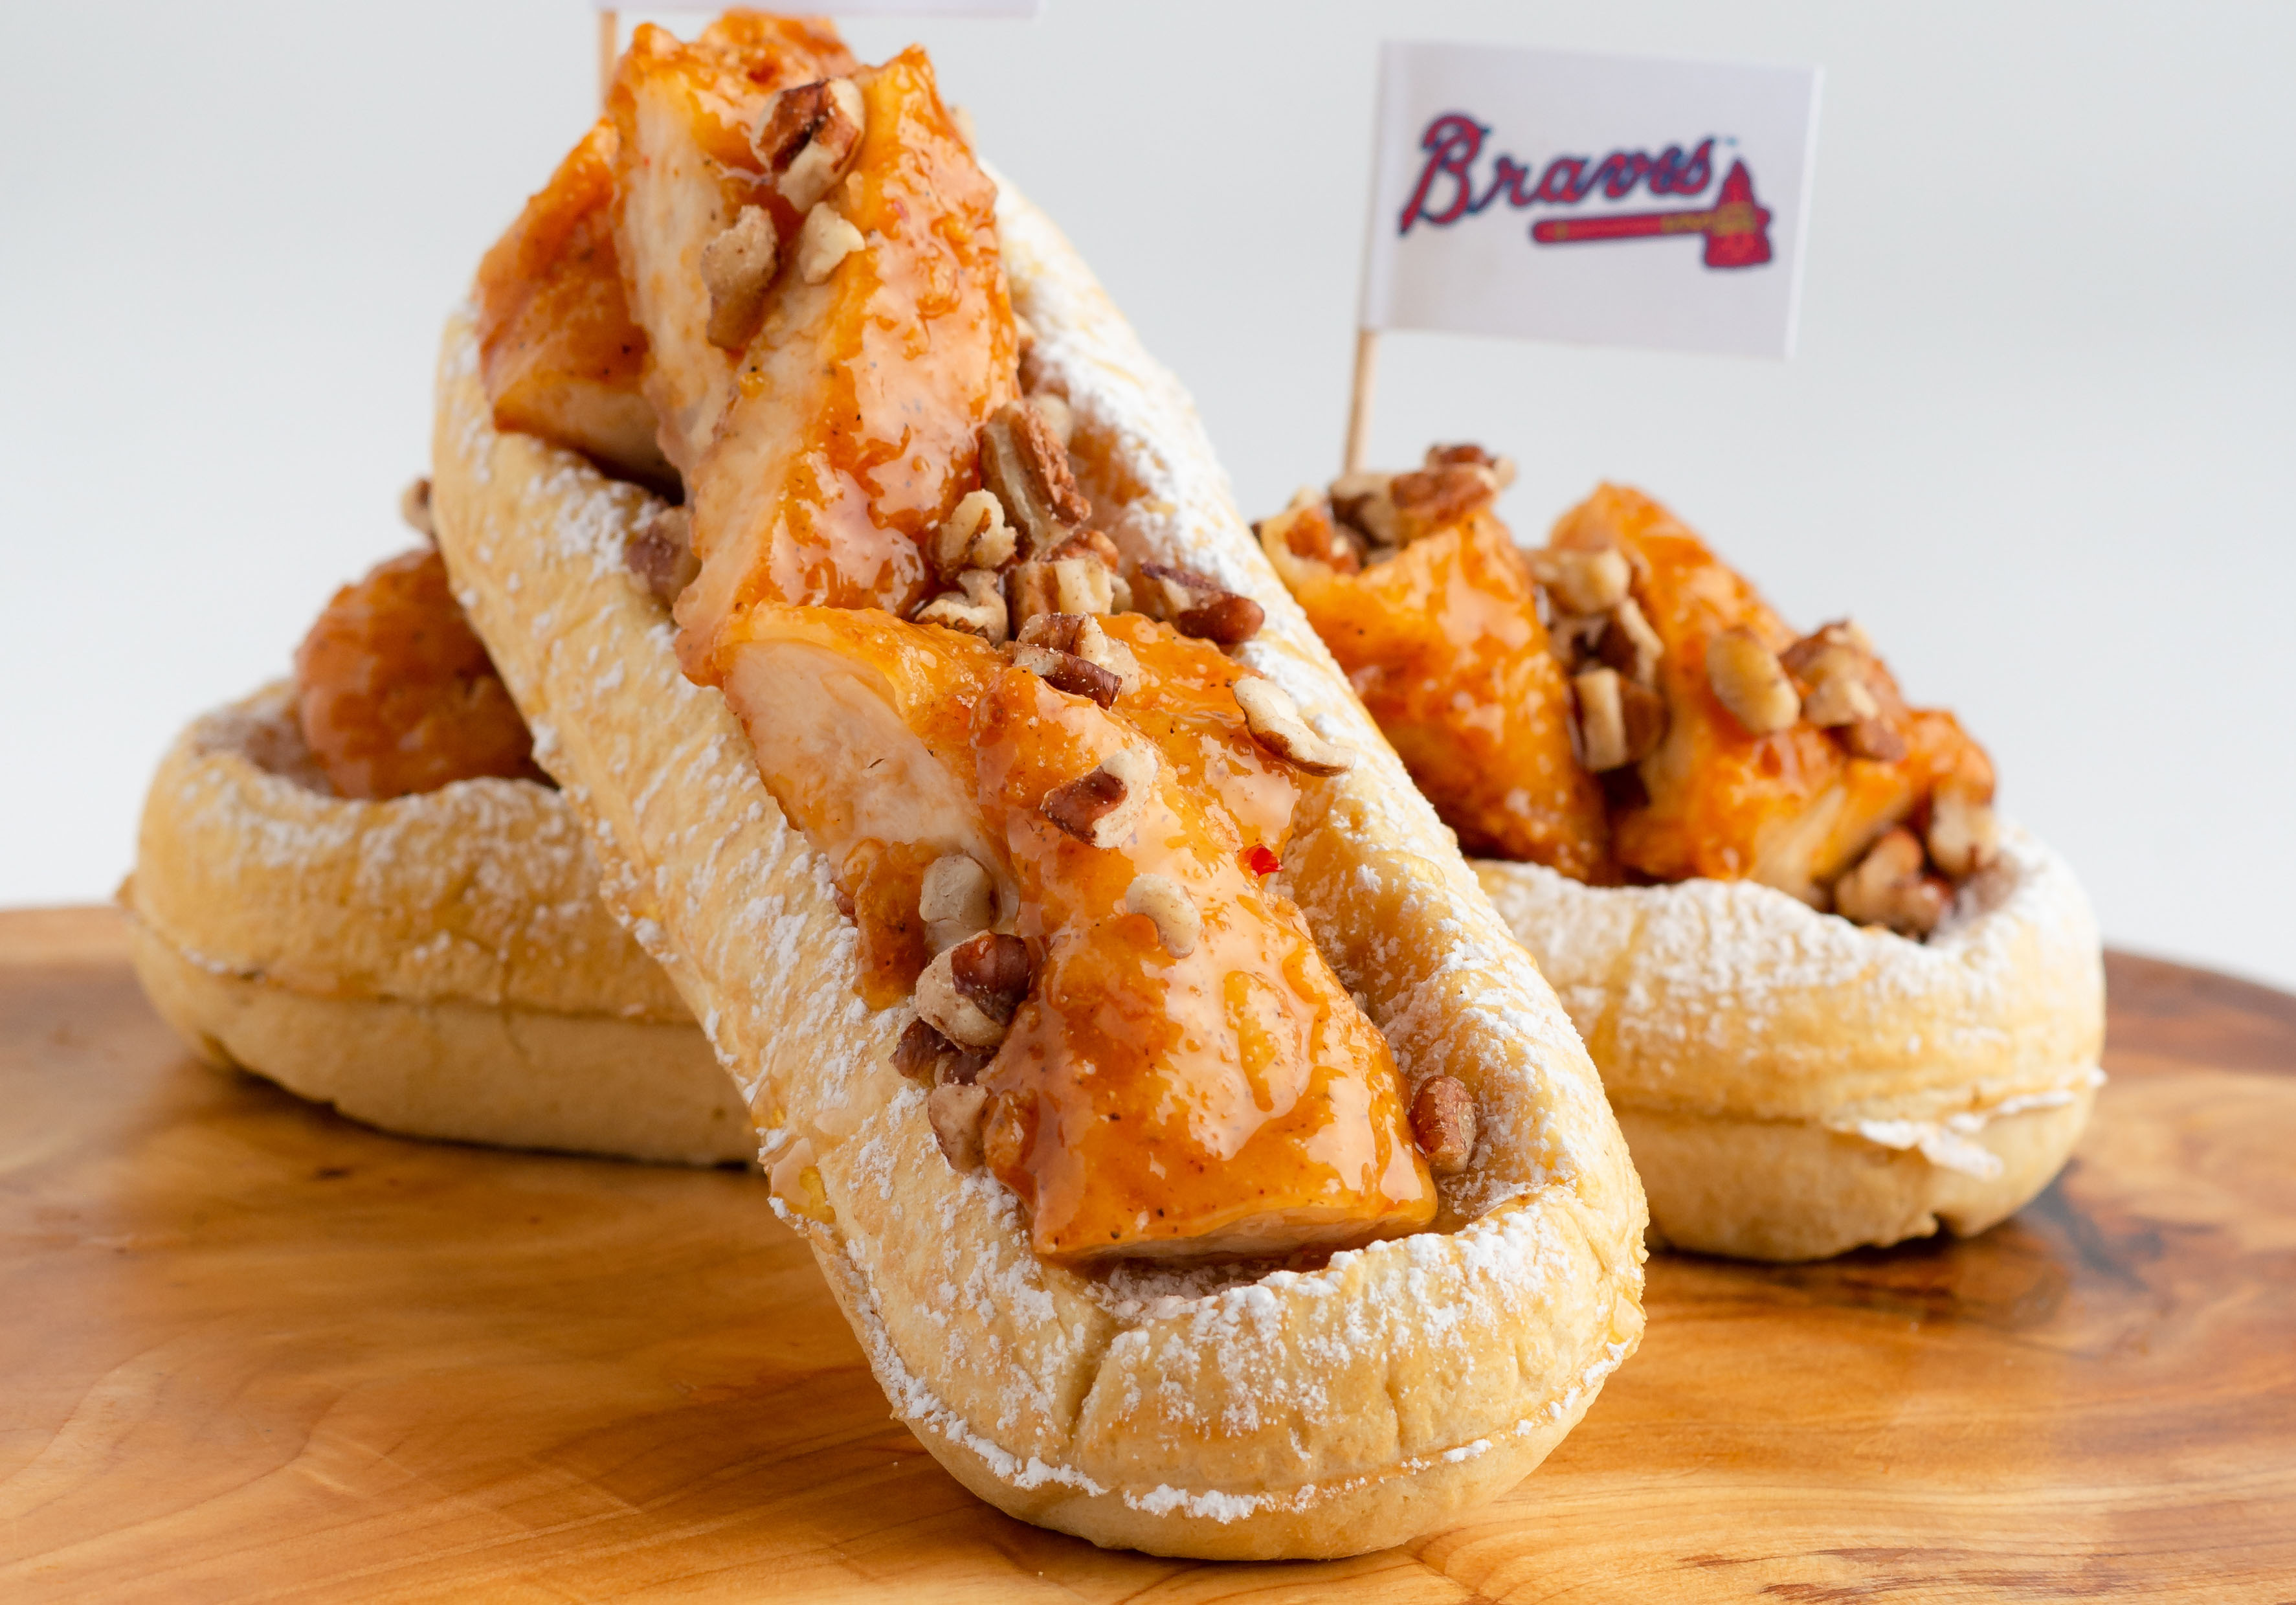 best nfl food, new nfl food, best MLB concessions, mlb stadium food, MLB game day food, detroit lions food, chargers food, 49ers food, Redskins food, chiefs food, Cleveland Browns food, chicago white sox food, houston texans food